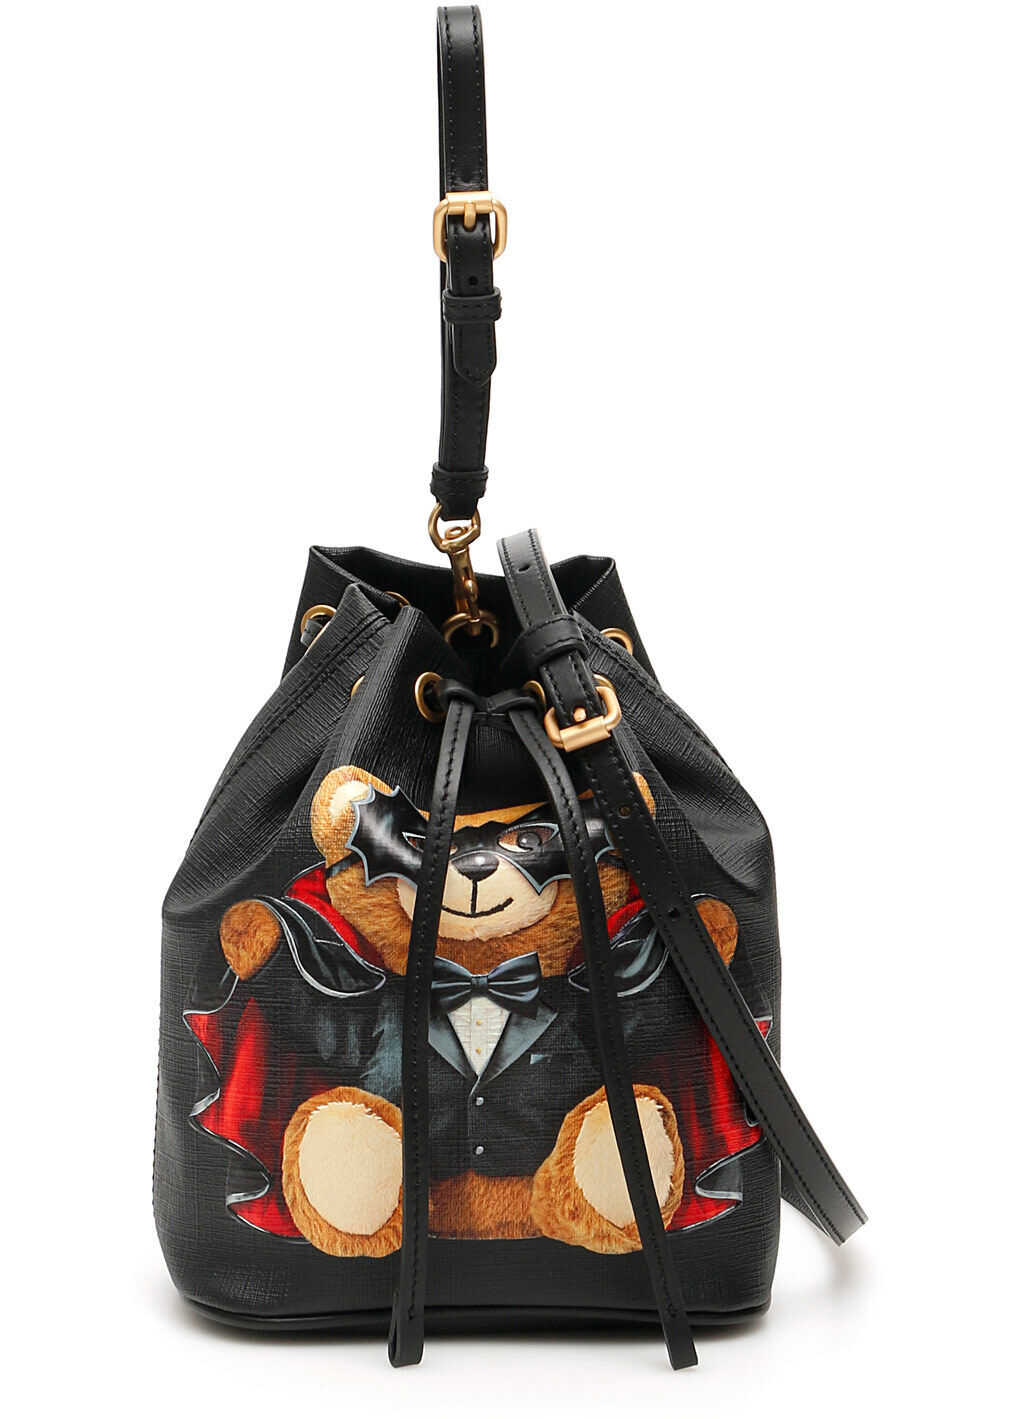 Moschino Bat Teddy Bear Bucket Bag FANTASIA NERO